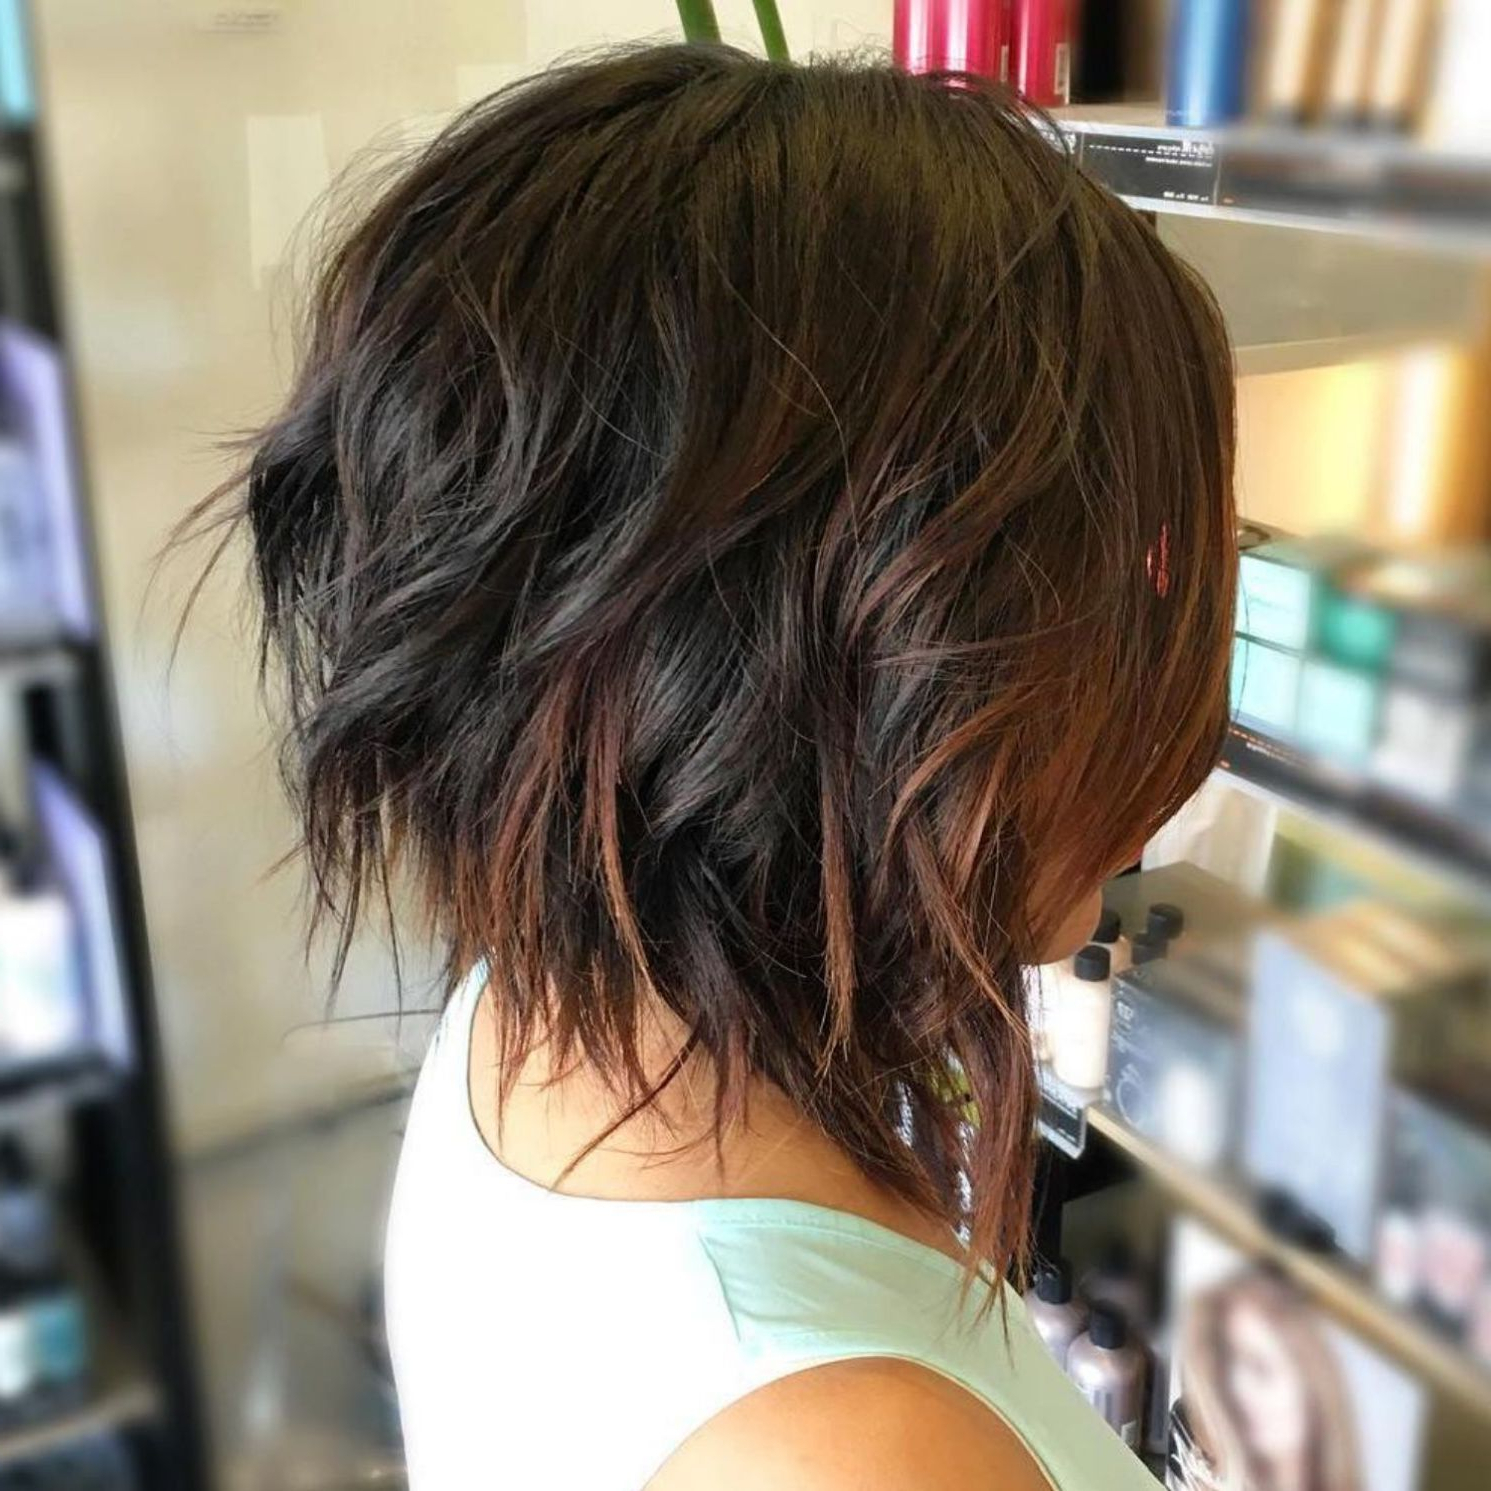 Newest Pretty Shaggy Brunette Bob Hairstyles With Regard To 60 Messy Bob Hairstyles For Your Trendy Casual Looks In (View 12 of 20)